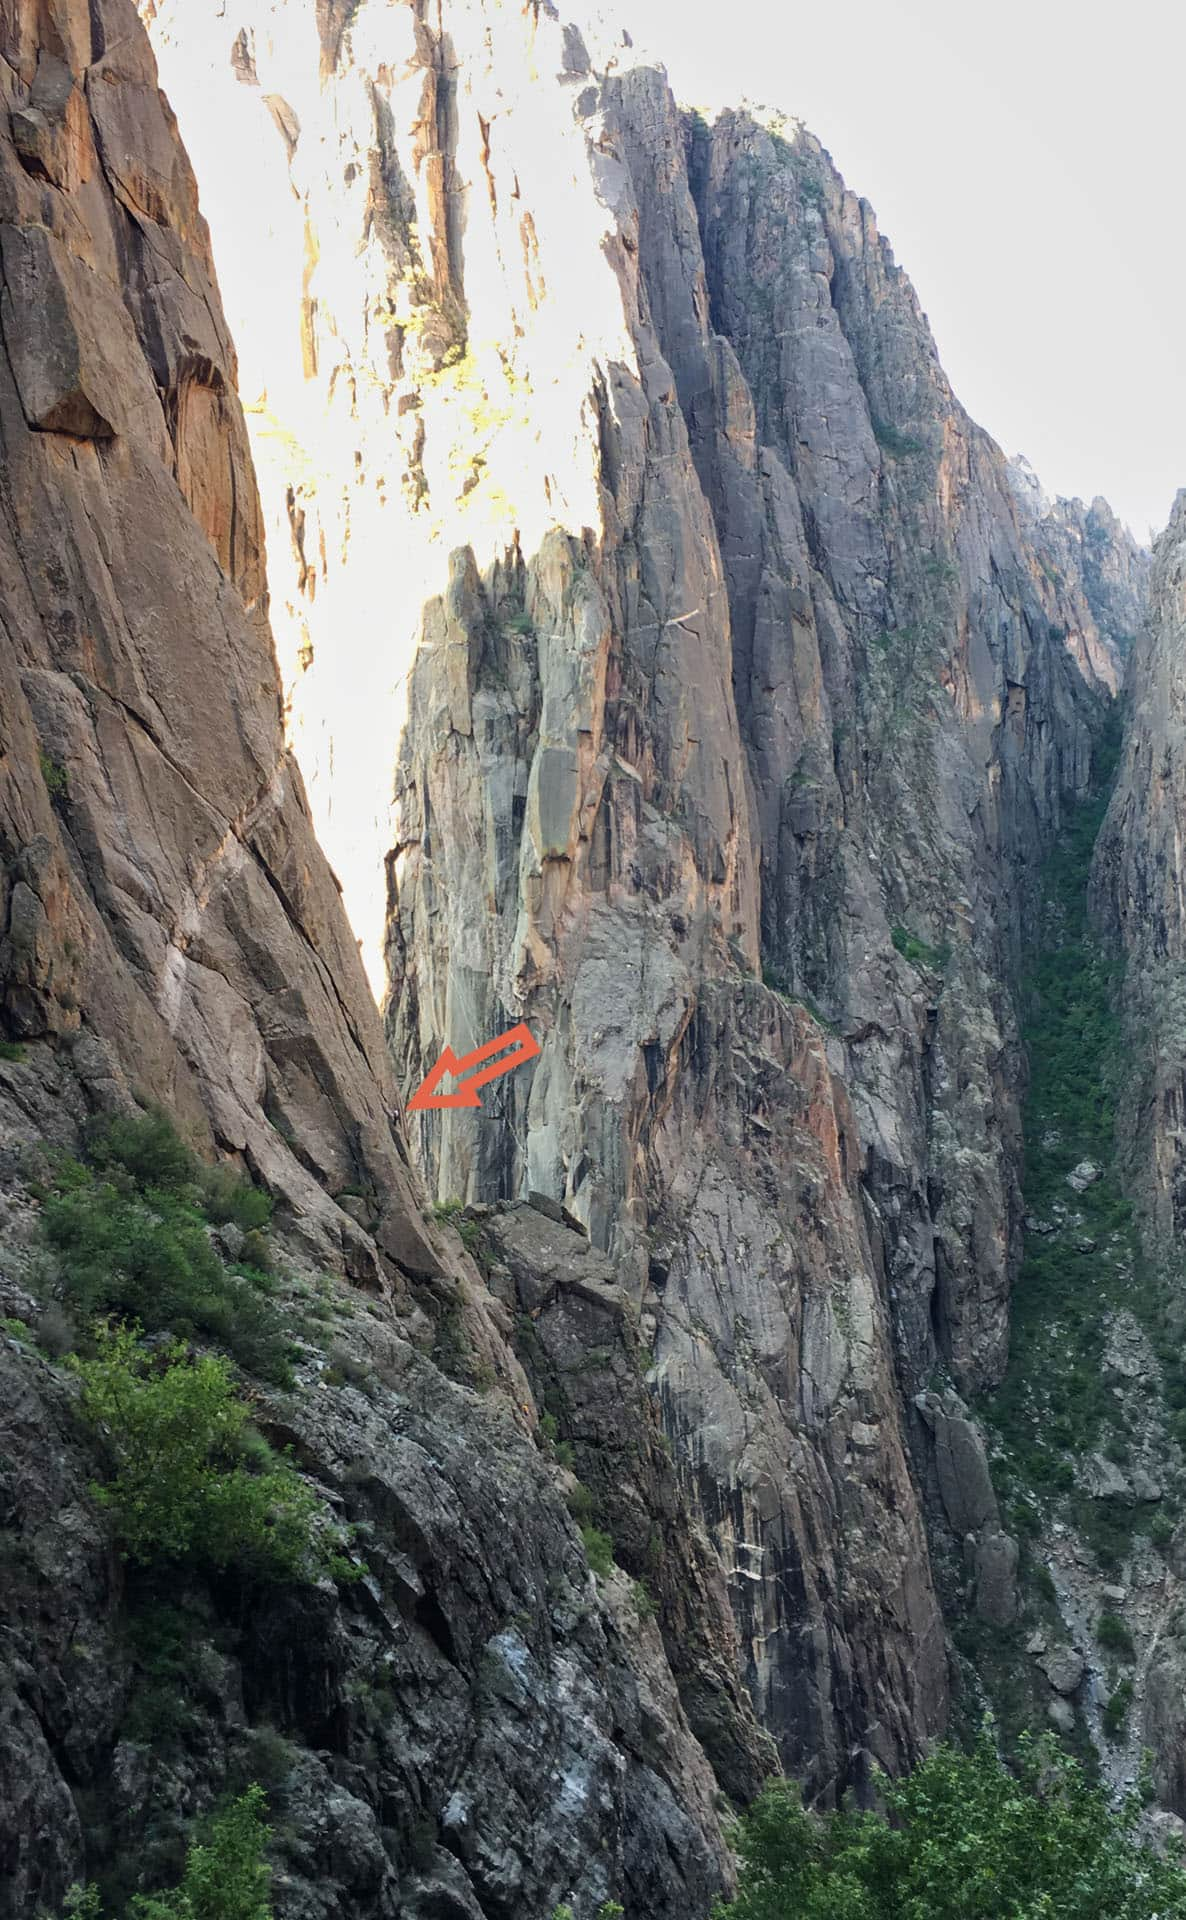 Climber in the Black Canyon